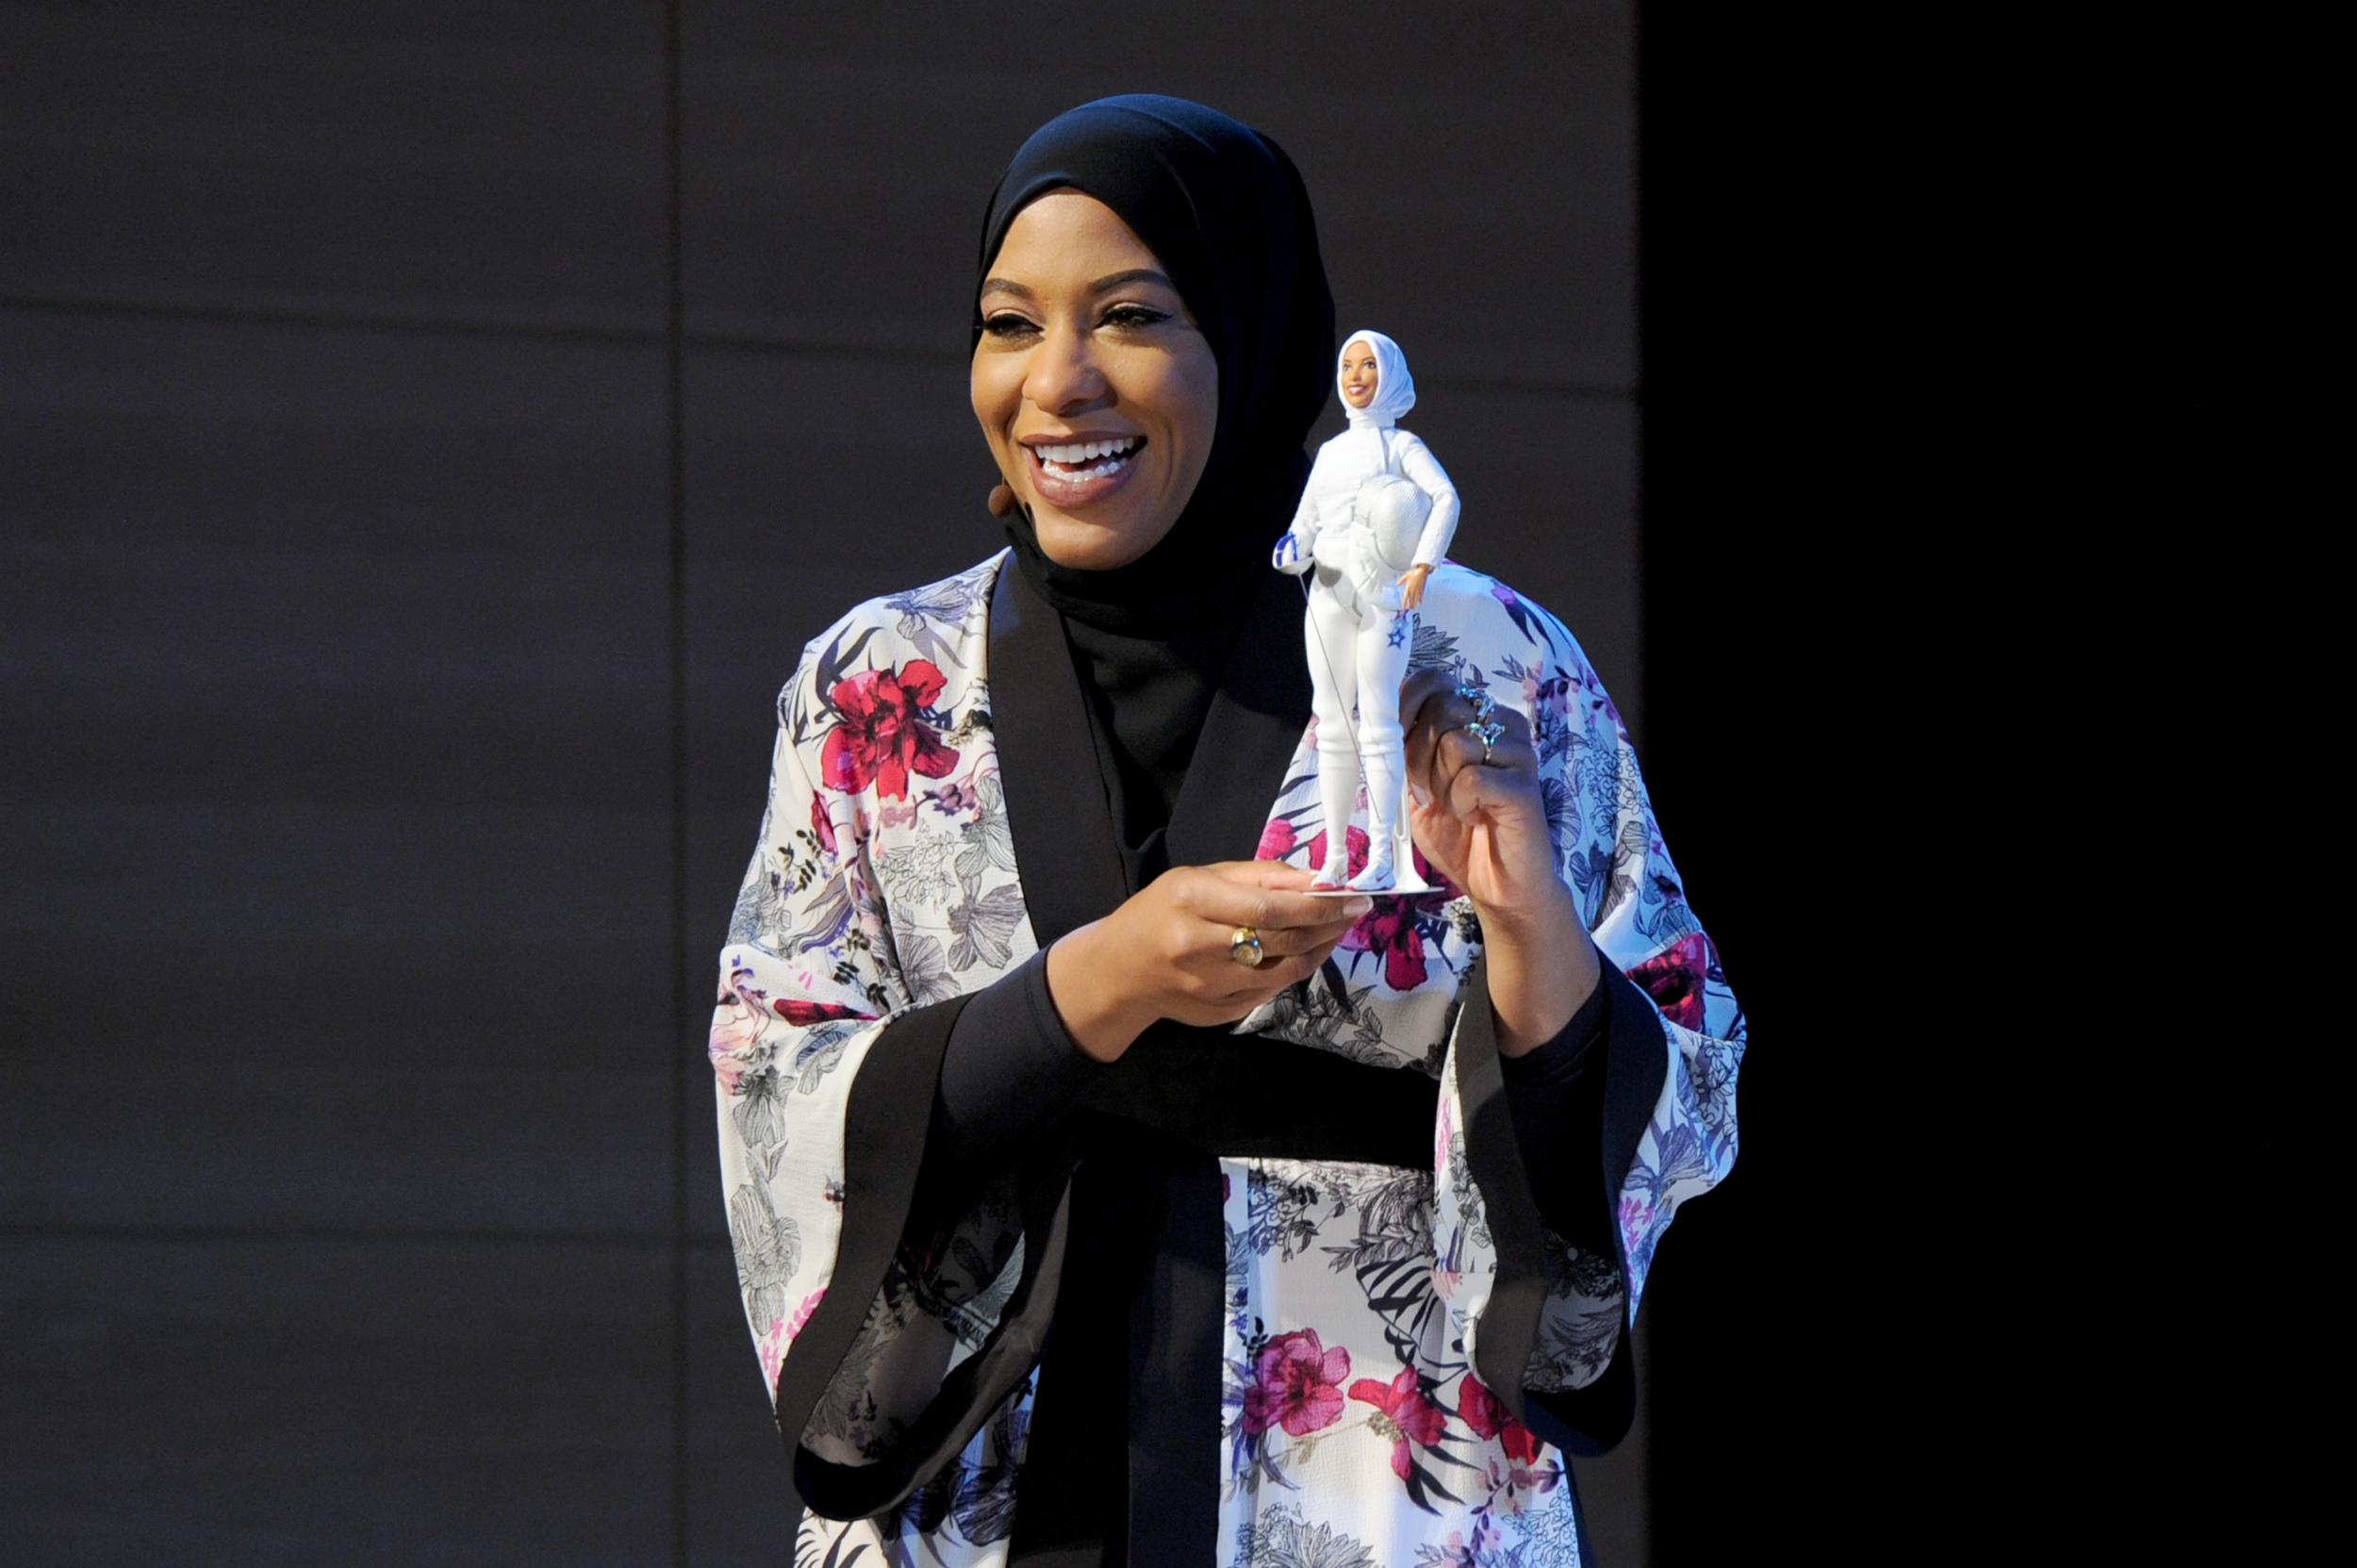 Barbie has a hijab for the first time as this badass Olympic fencer